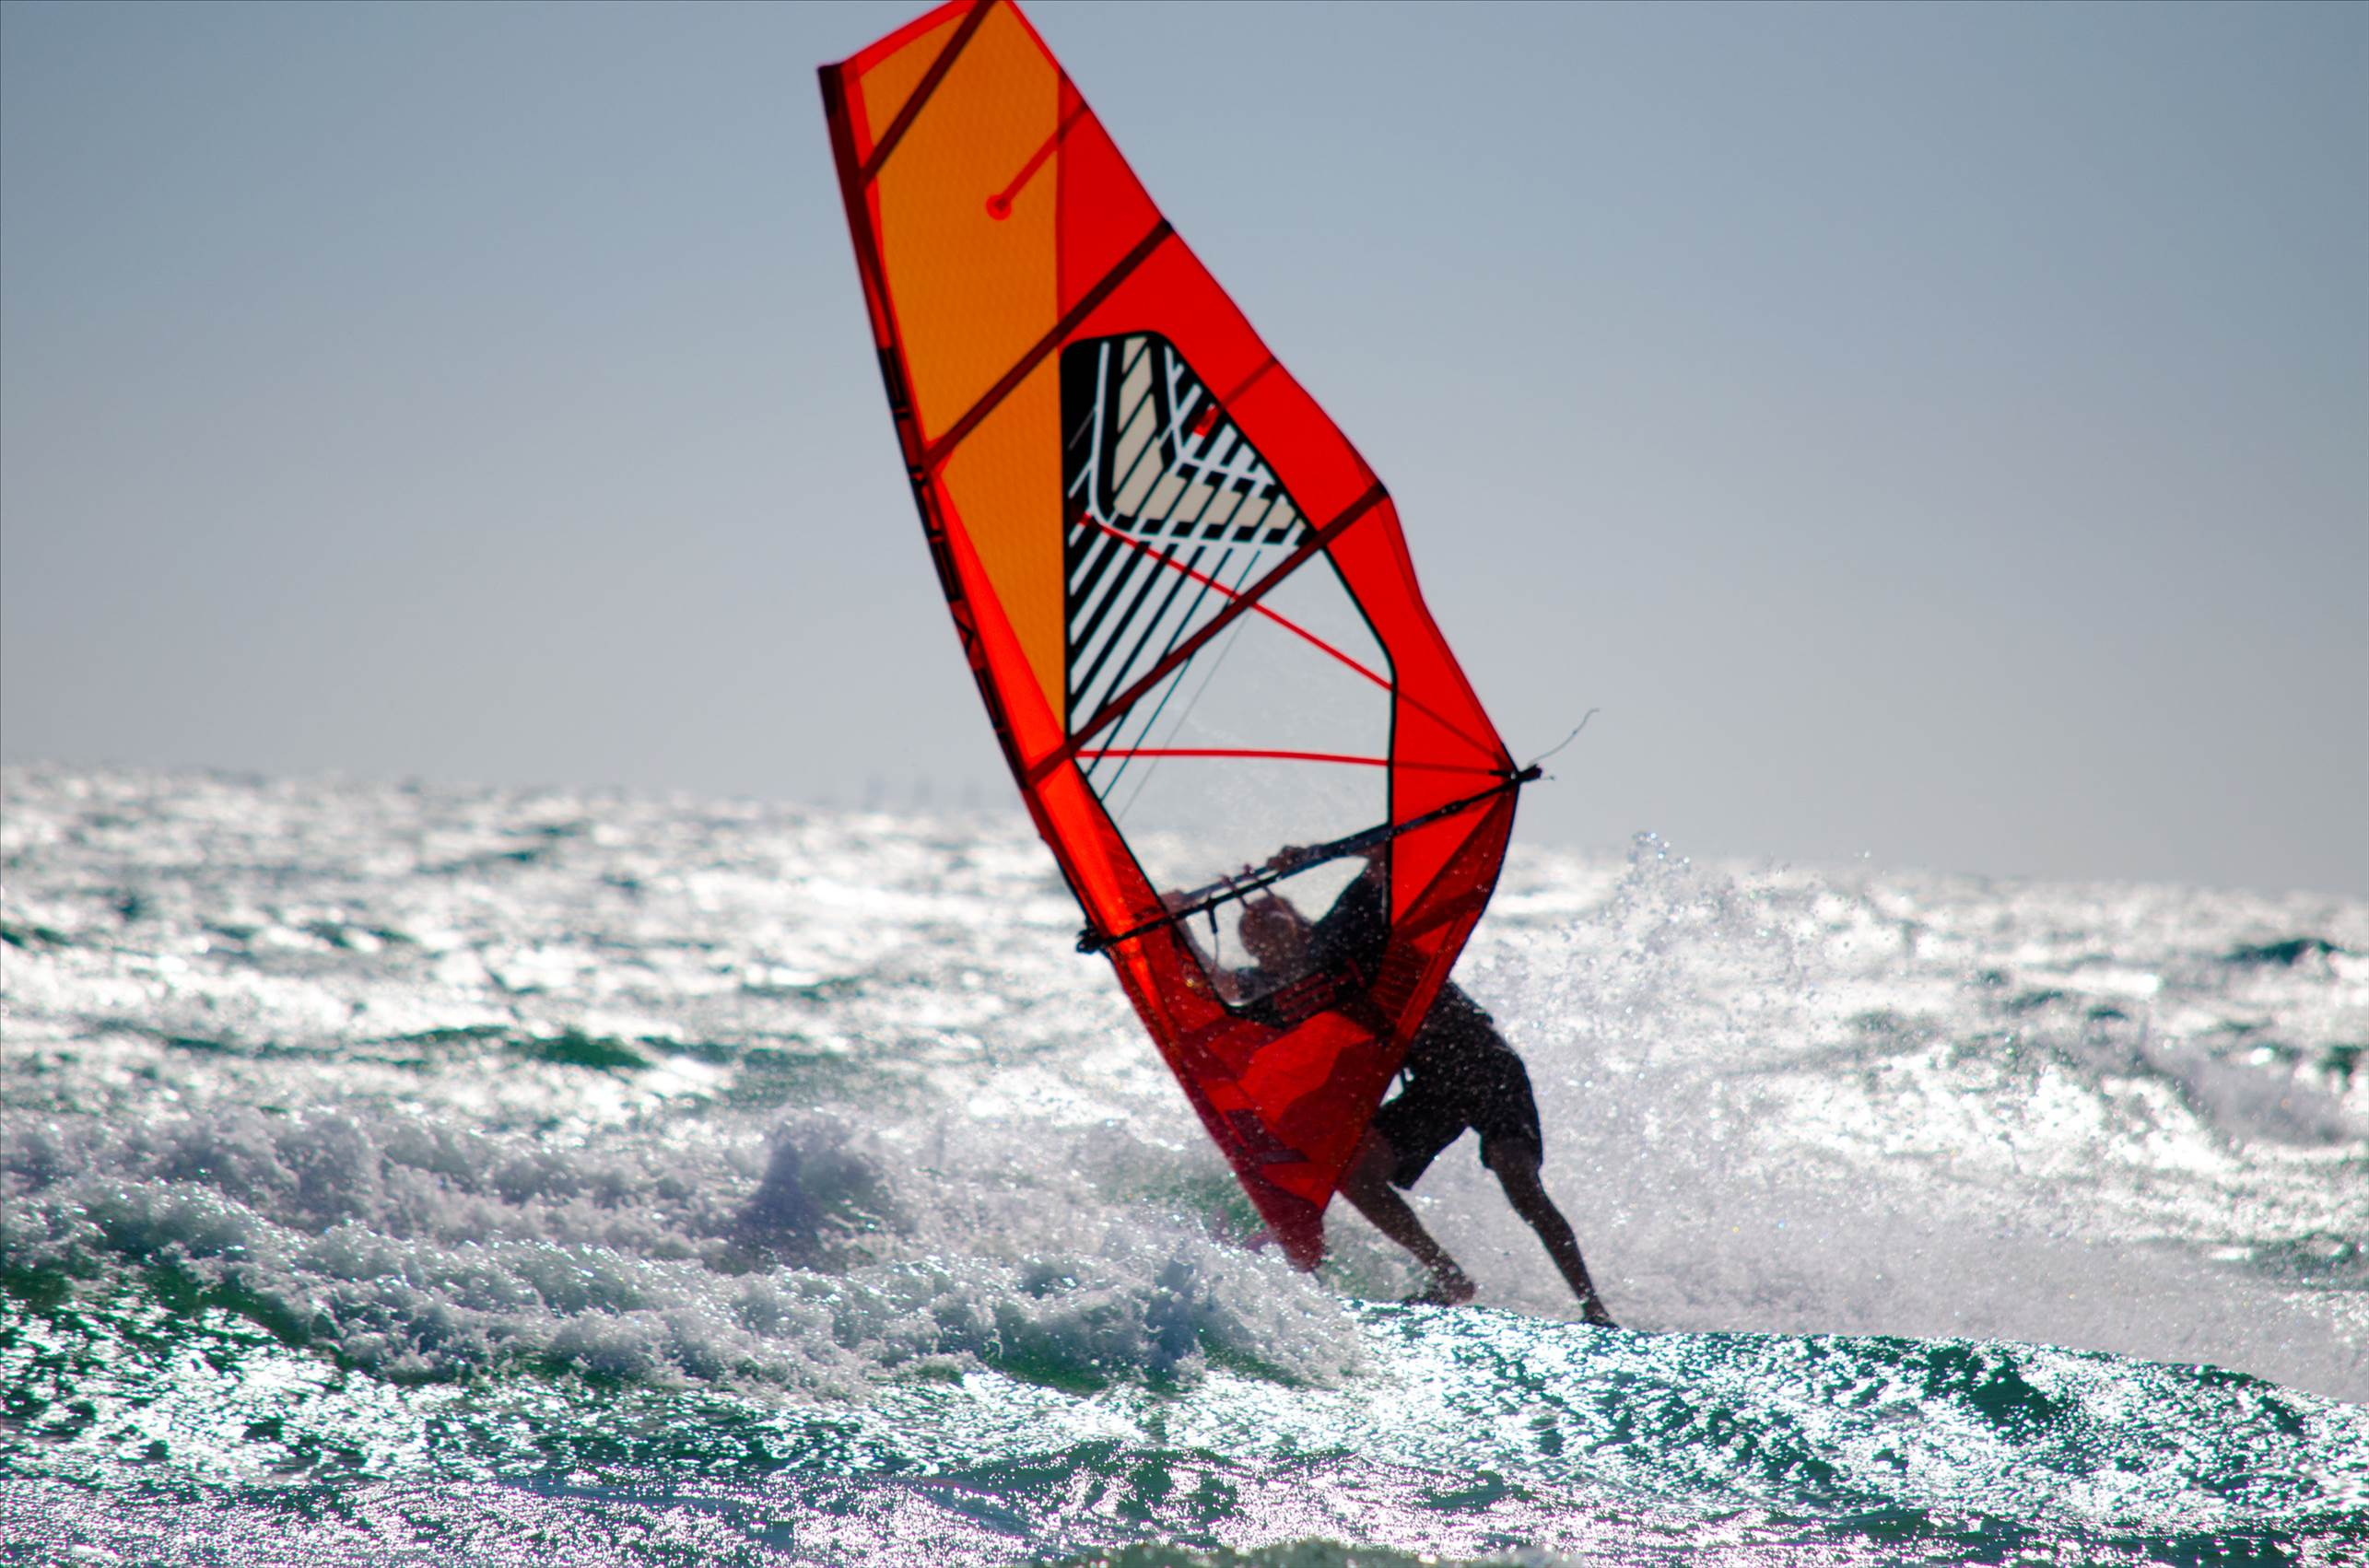 North Haven Australia  city photos gallery : North Haven 7116 Windsurfing South Australia Seabreeze Forums!